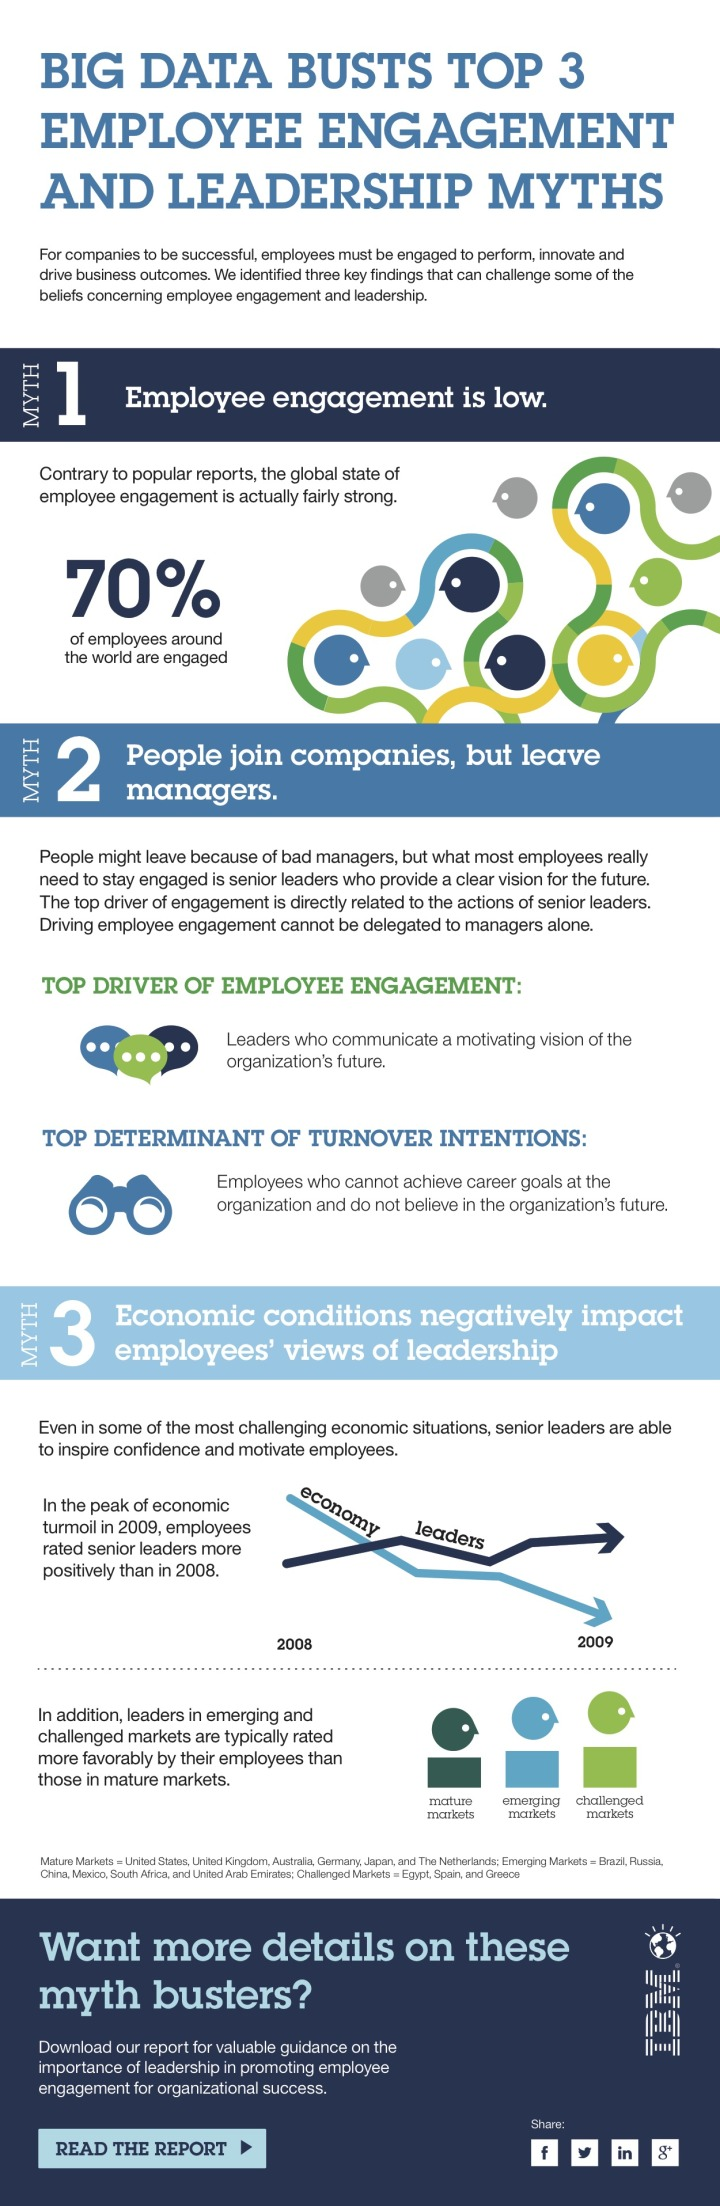 big data myth busters employee engagement and leadership edition ibm big data busts top three employee engagement myths summary 20150121